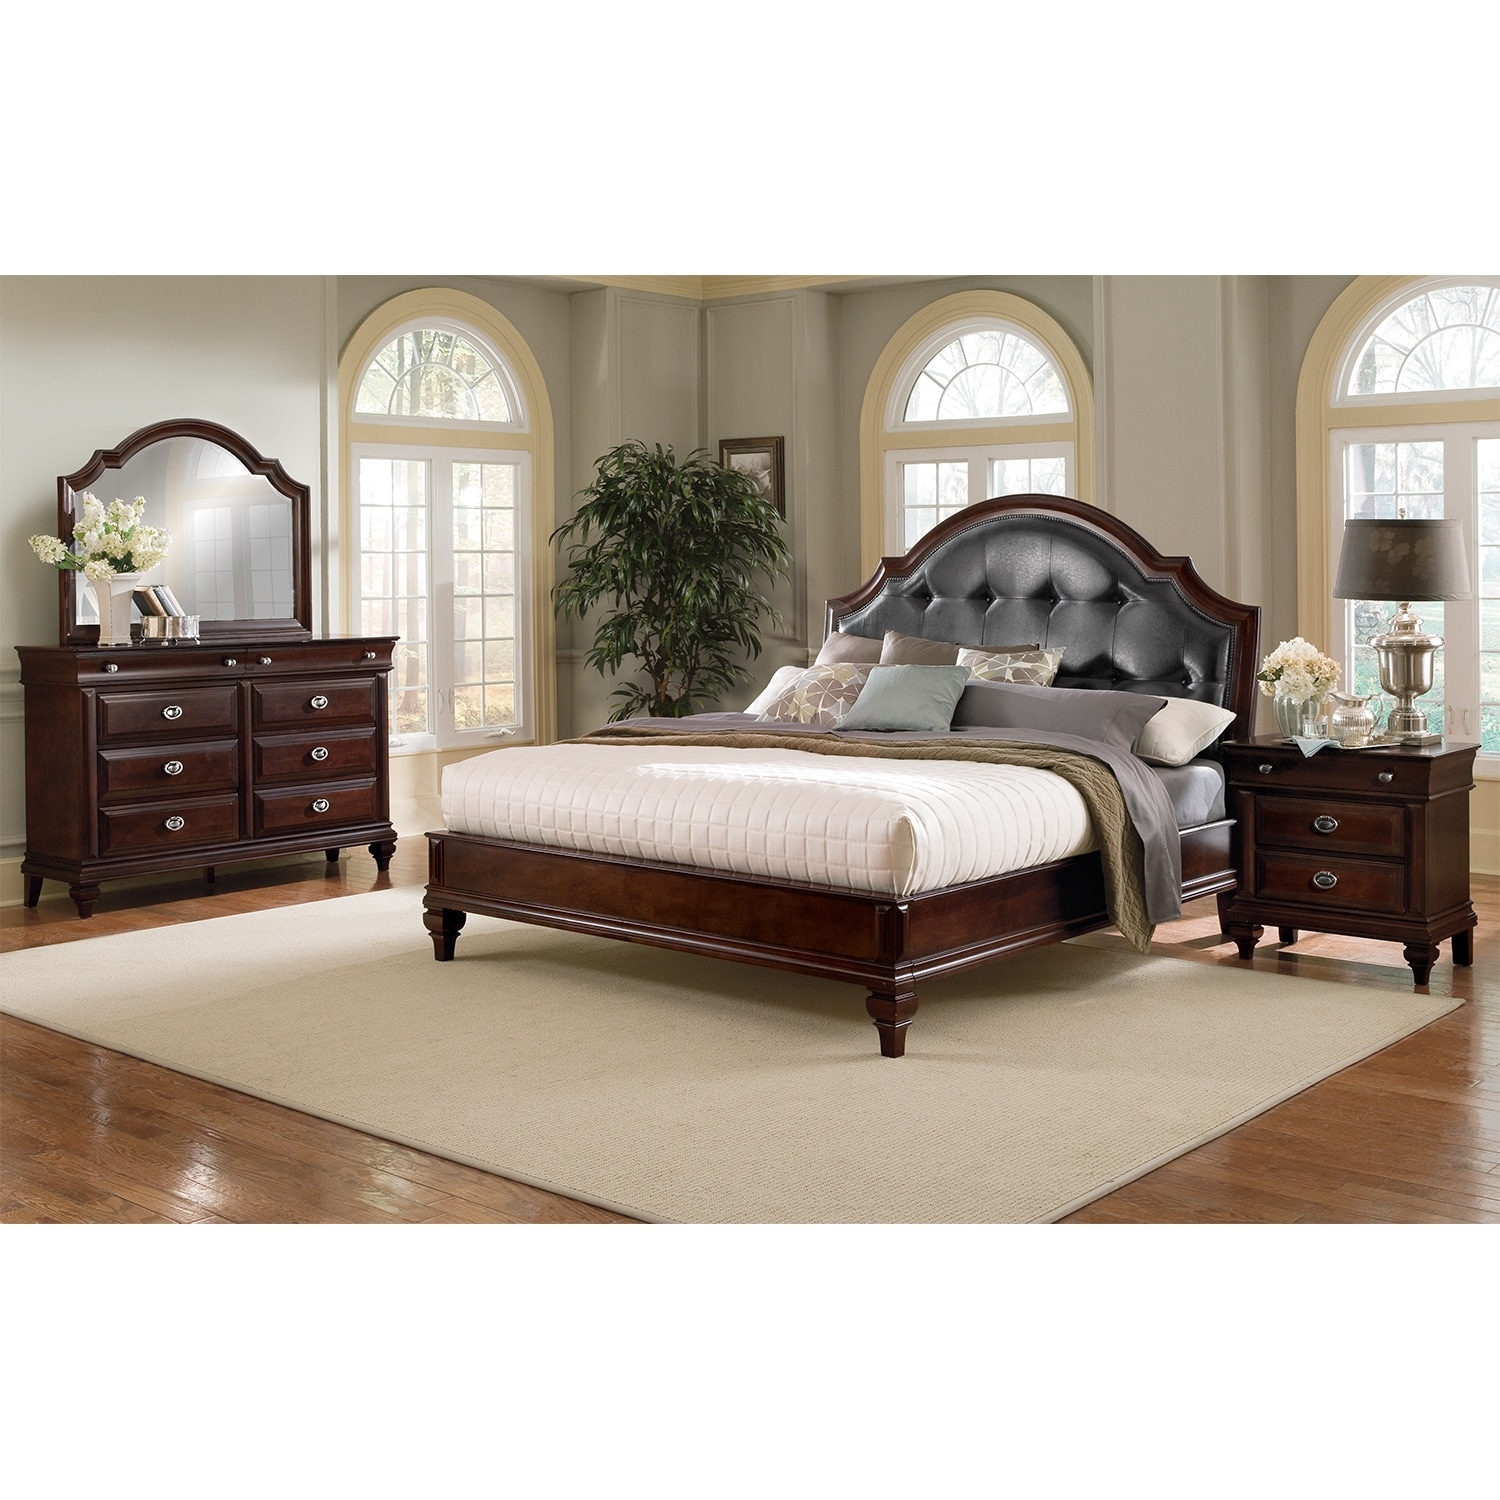 Bedroom Furniture: Manhattan 6-Piece King Bedroom Set - Cherry